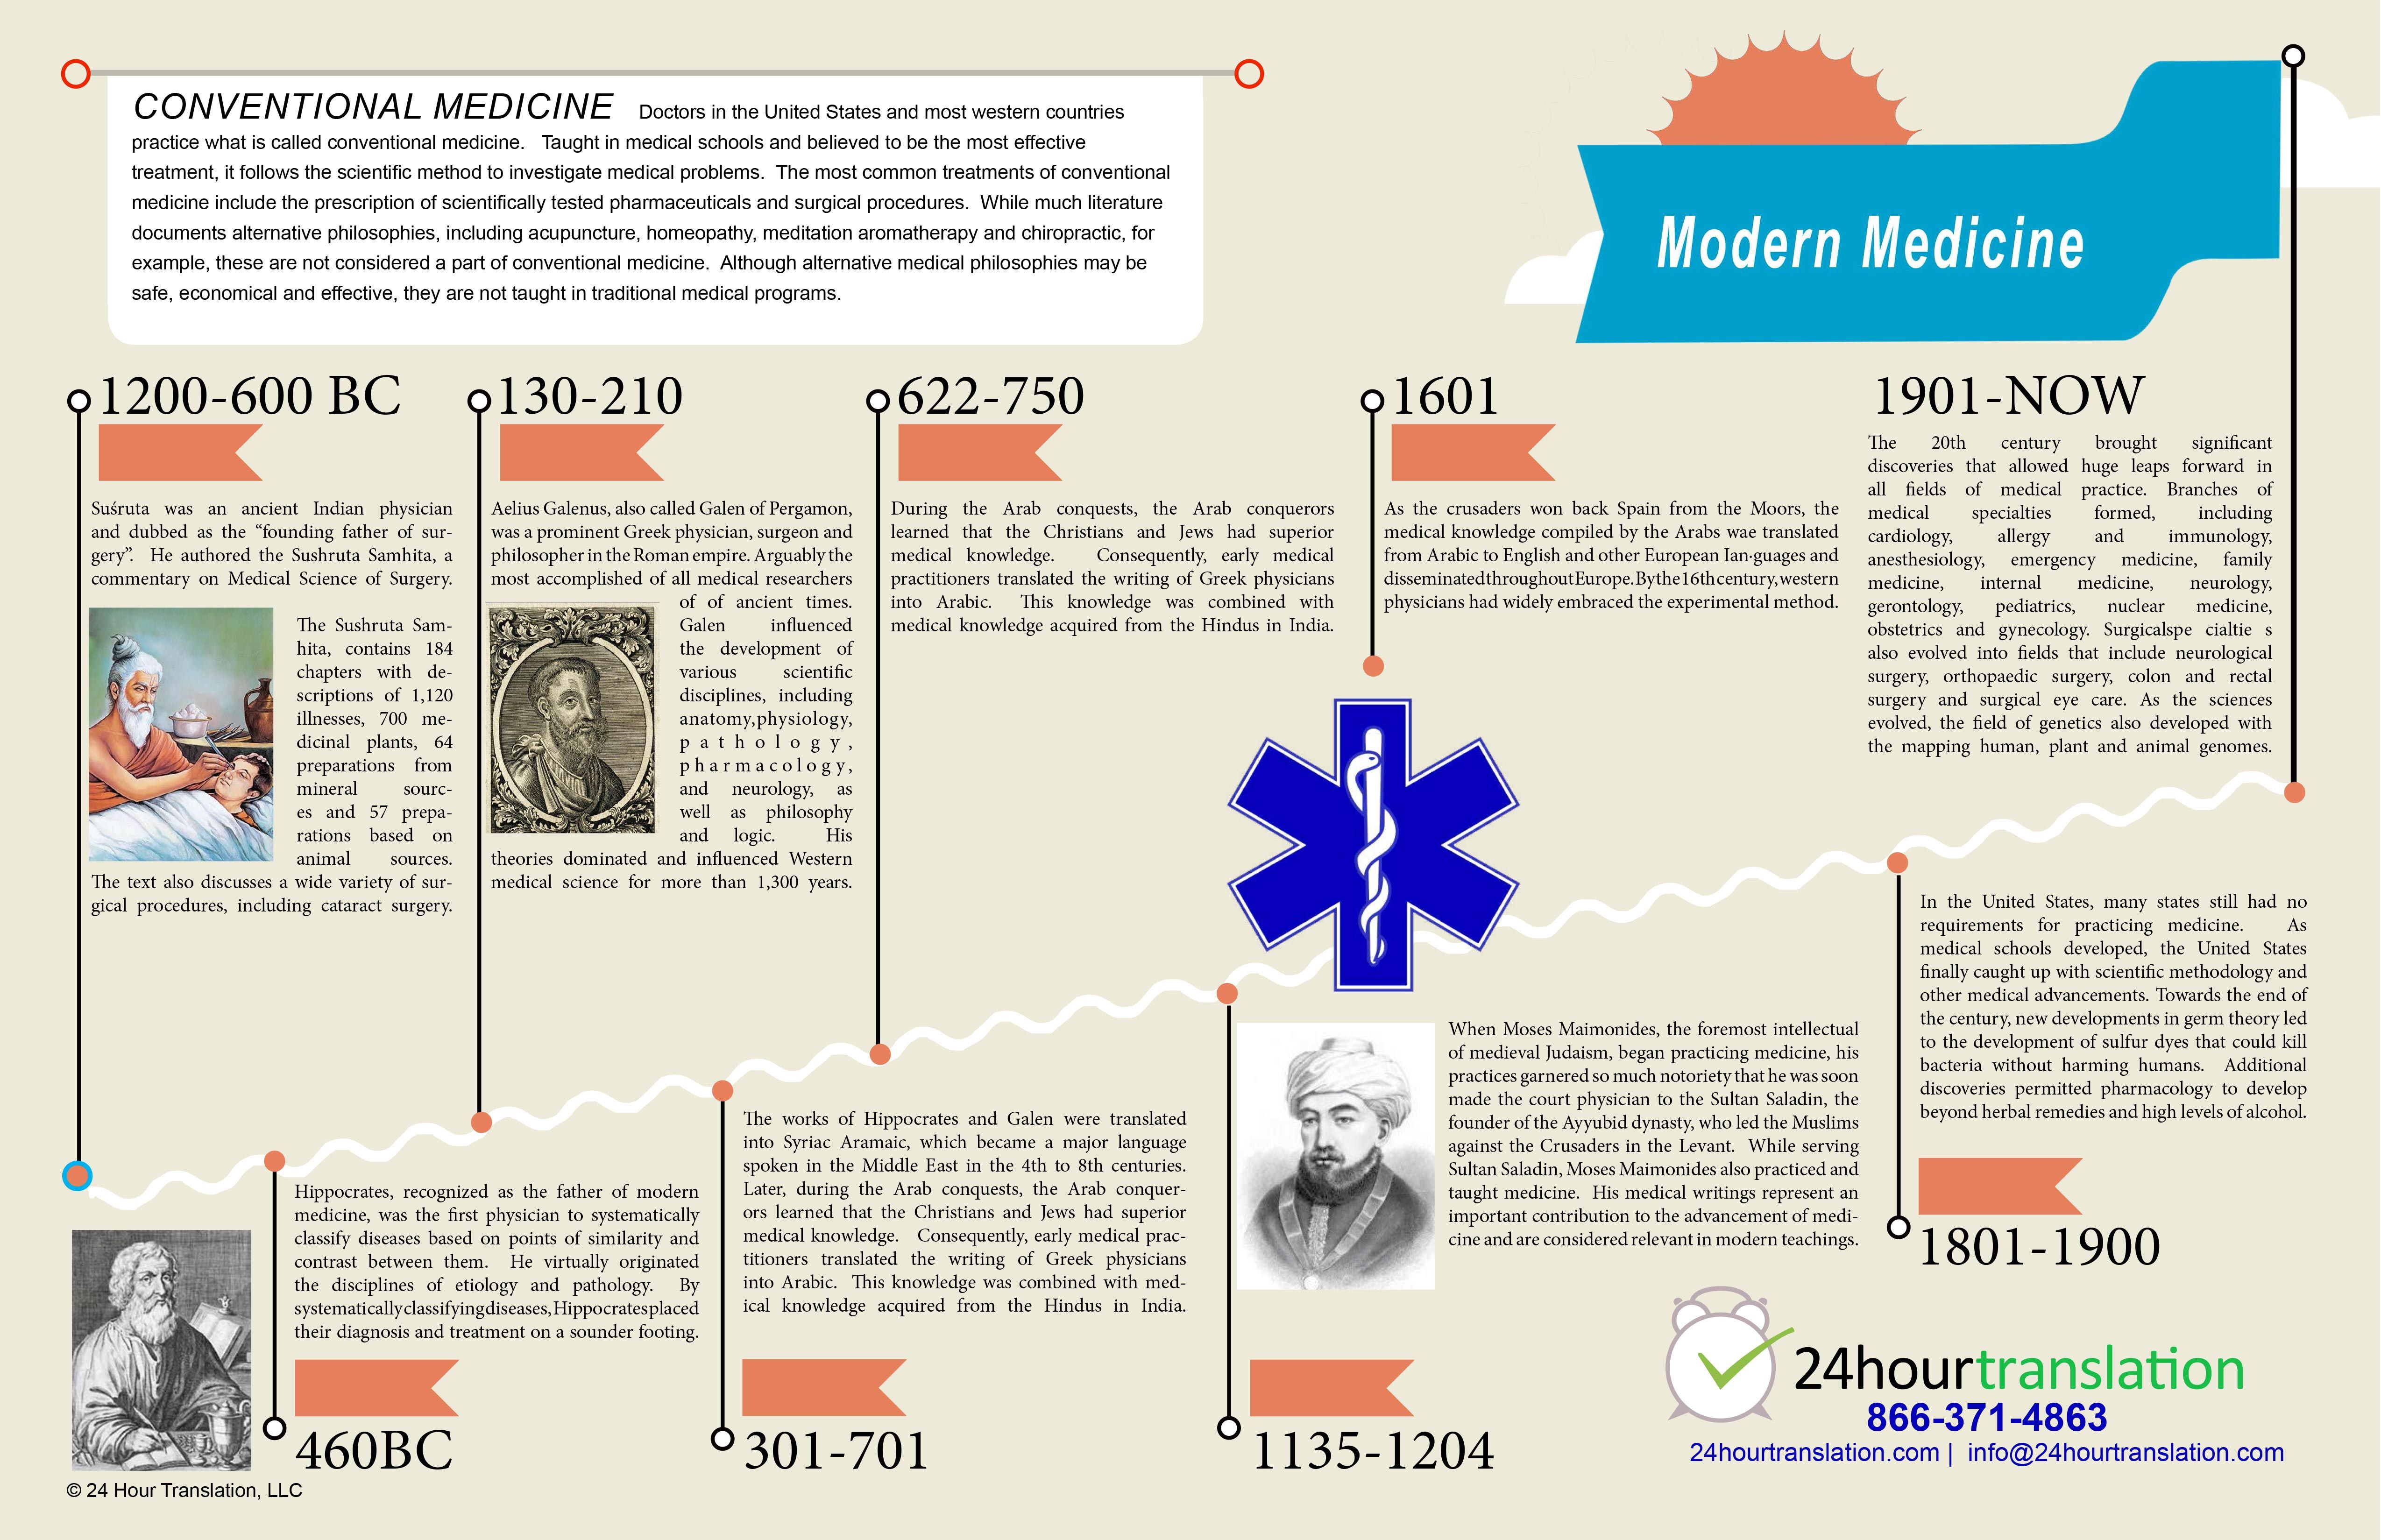 The origins of conventional medicine can be traced back to